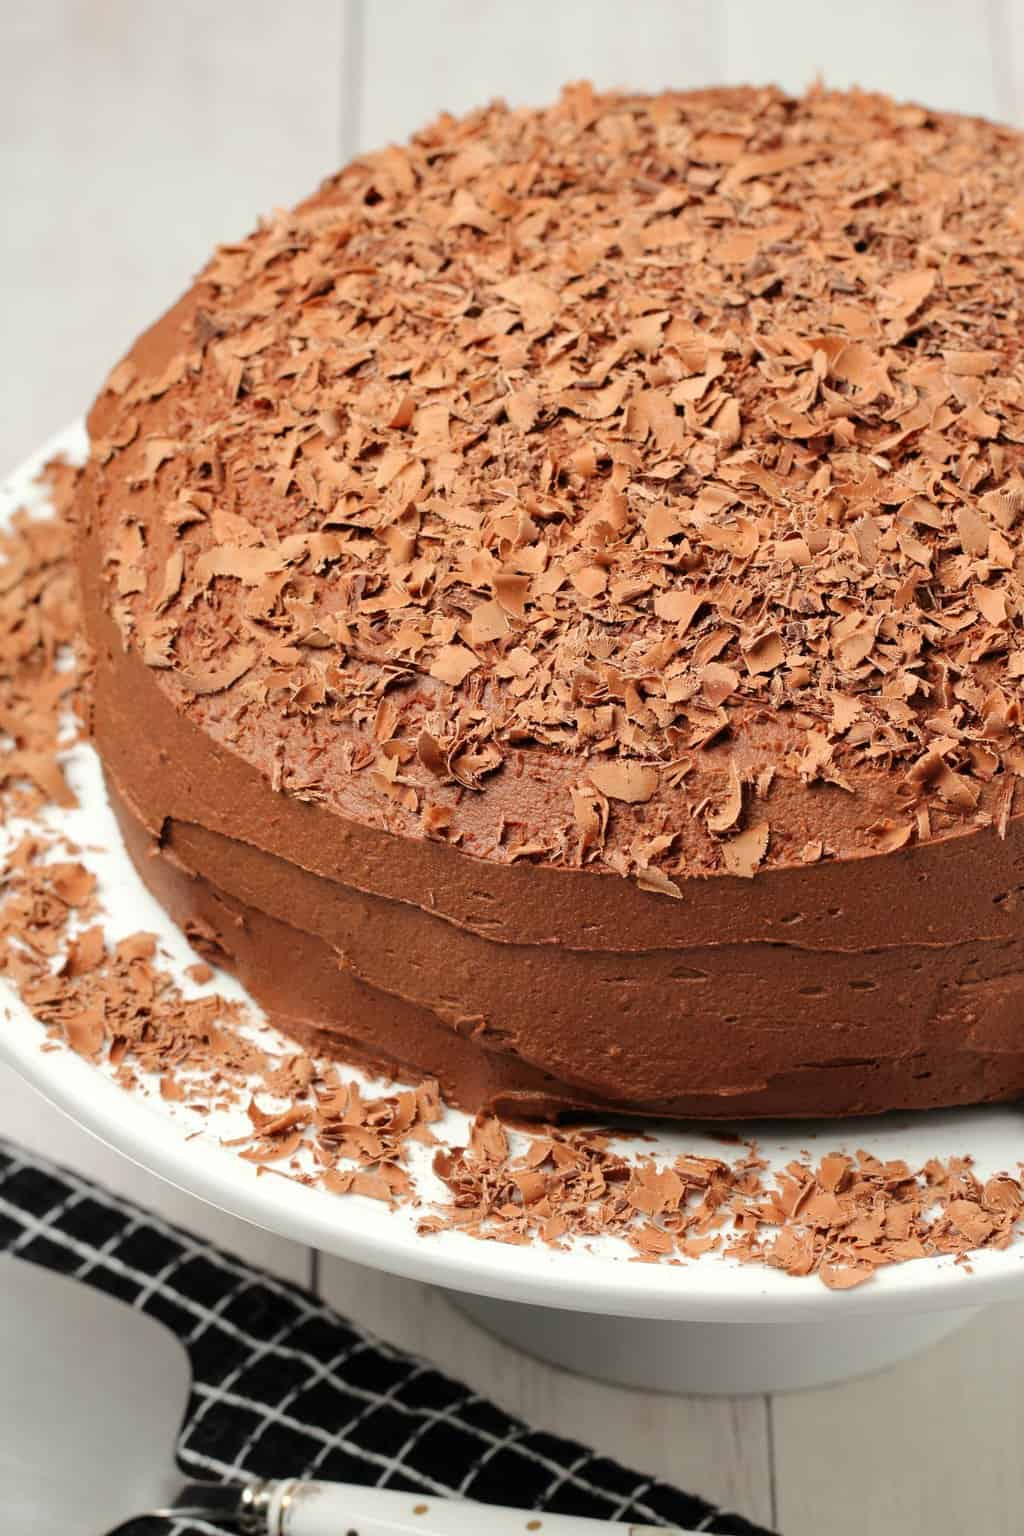 The best vegan chocolate cake topped with chocolate shavings on a white cake stand.